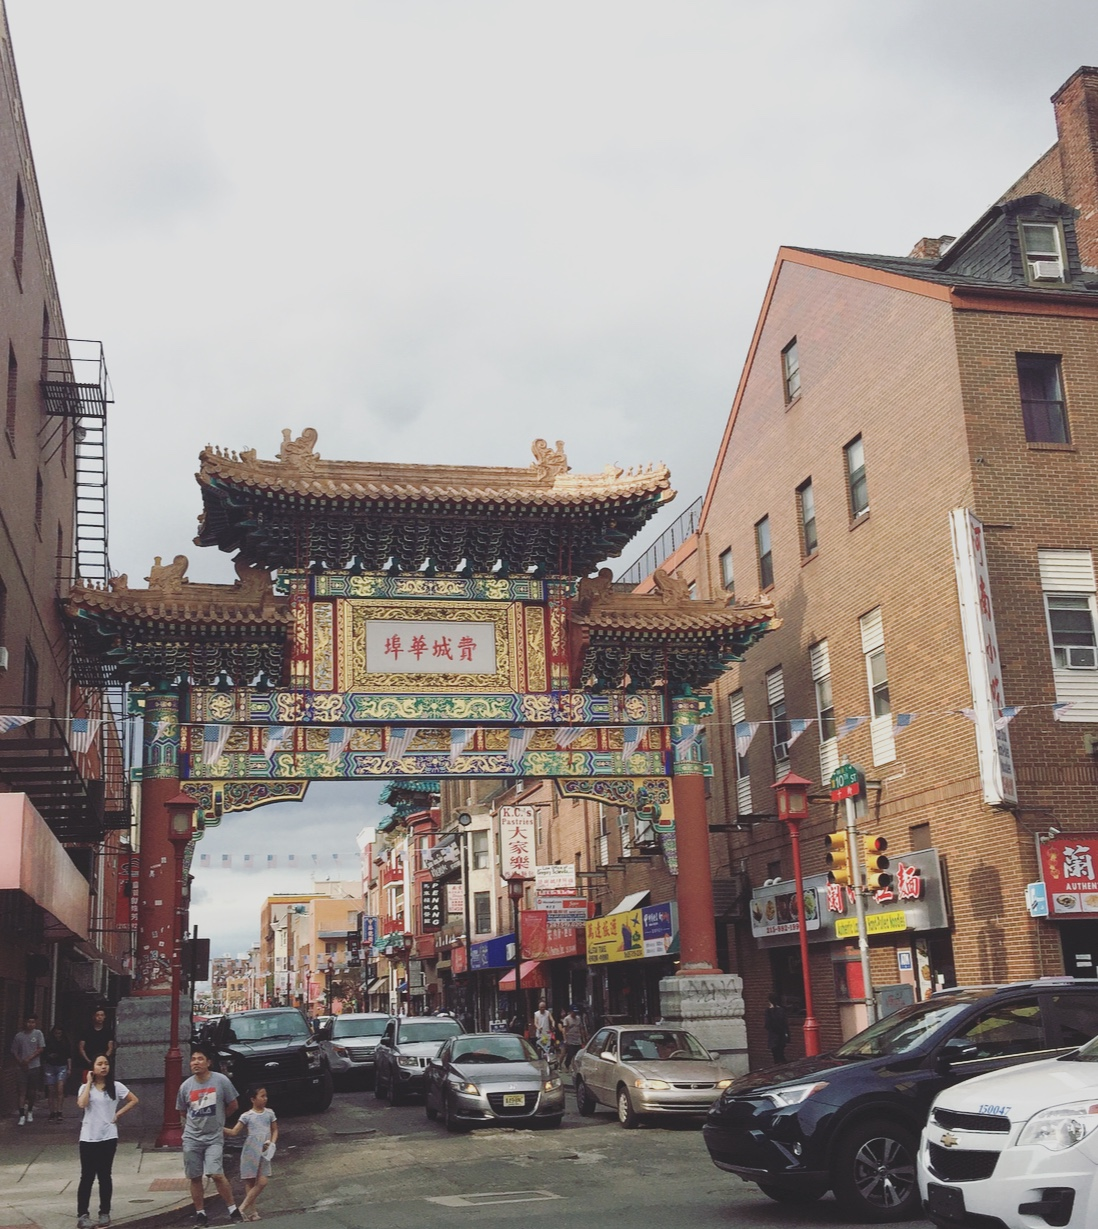 Chinatown Friendship Gate, Philadelphia, Pennsylvania, Stati Uniti.